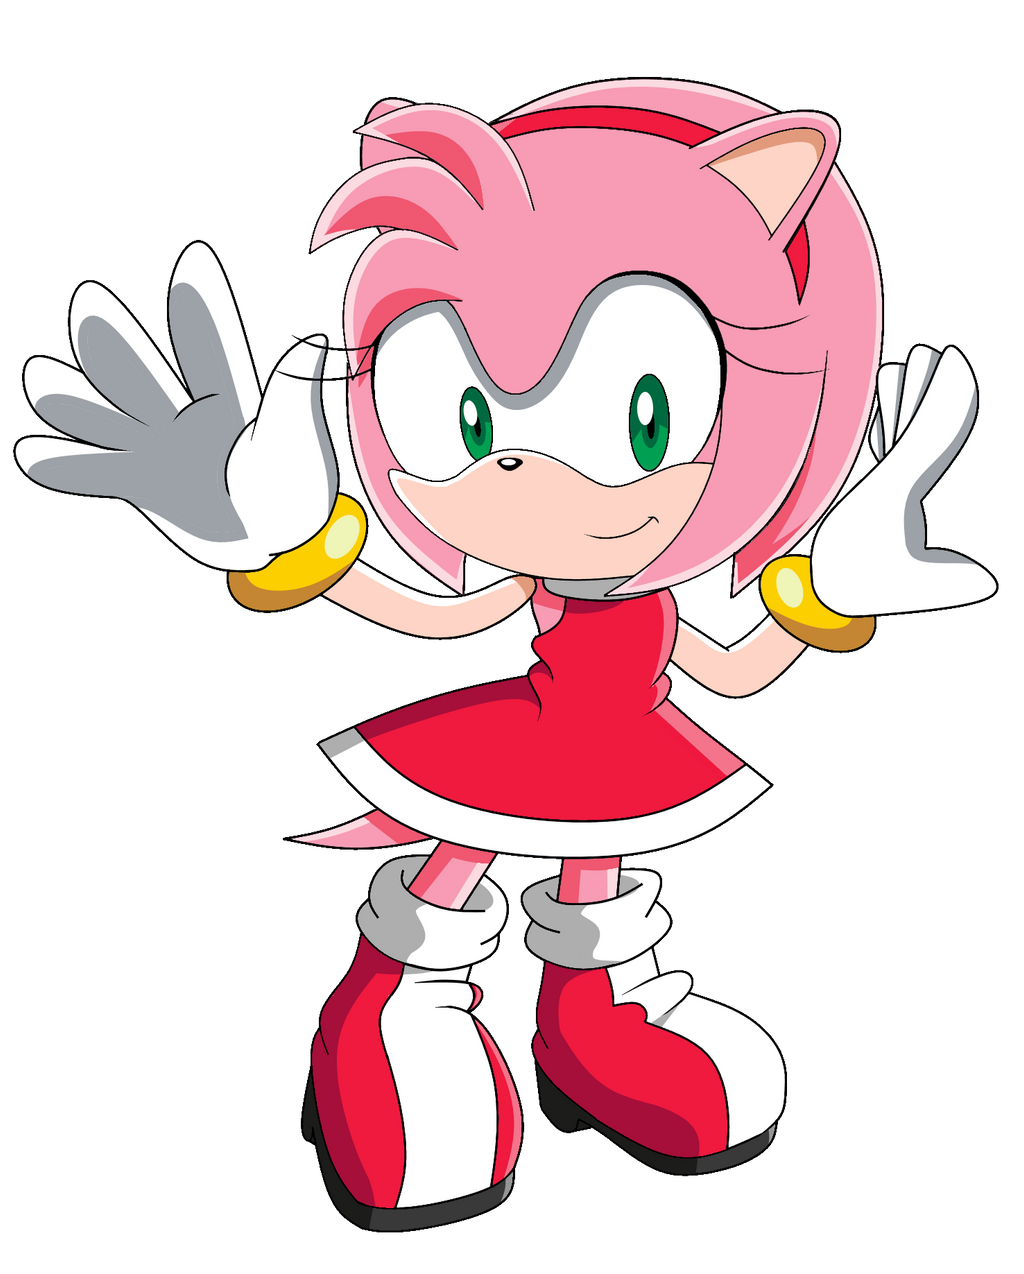 Amy Rose By SiIent-AngeI On DeviantArt